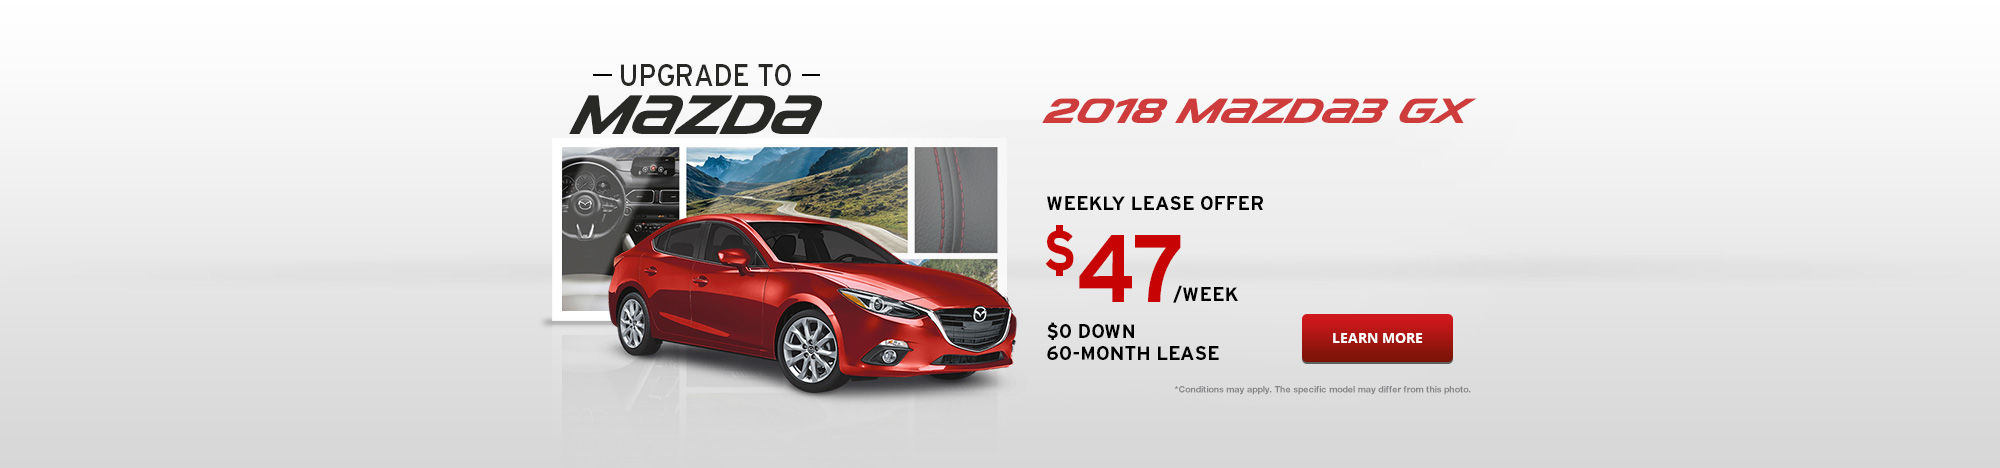 Upgrade To Mazda September - Mazda3